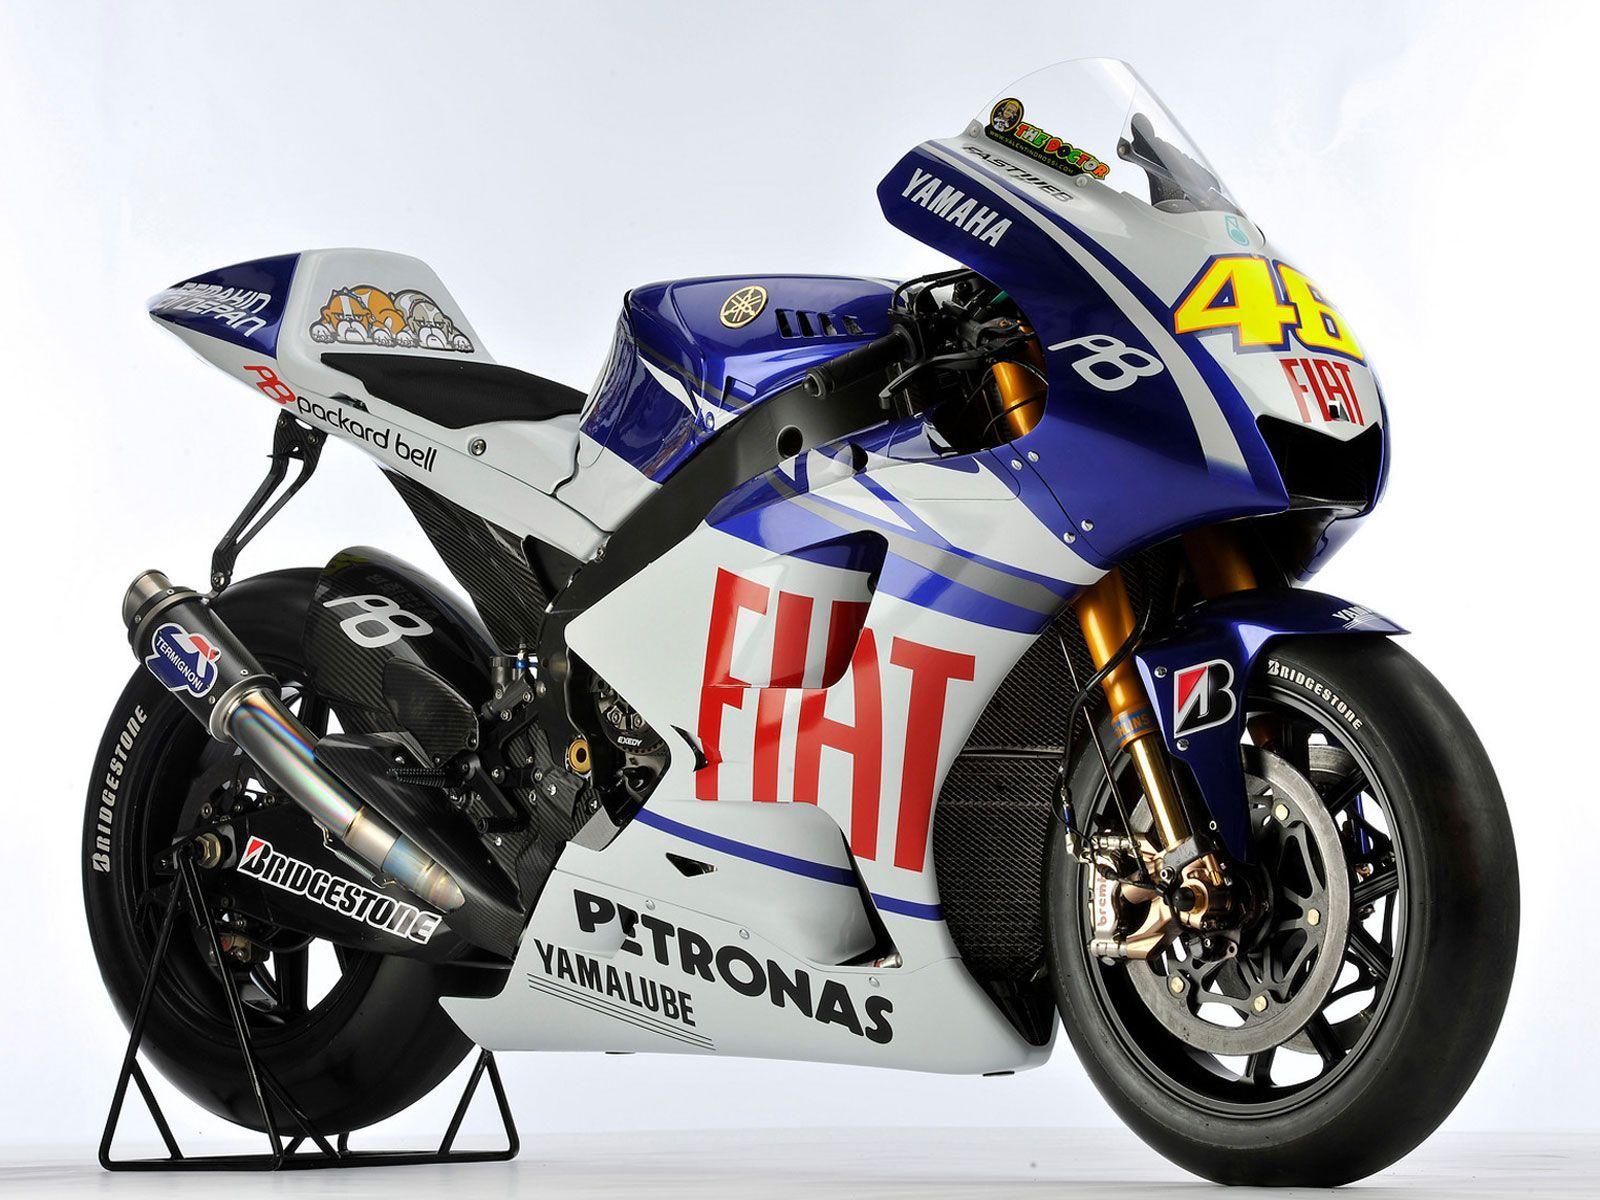 Motogp Bikes Wallpapers In 2020 Yamaha Motogp Yamaha Motogp